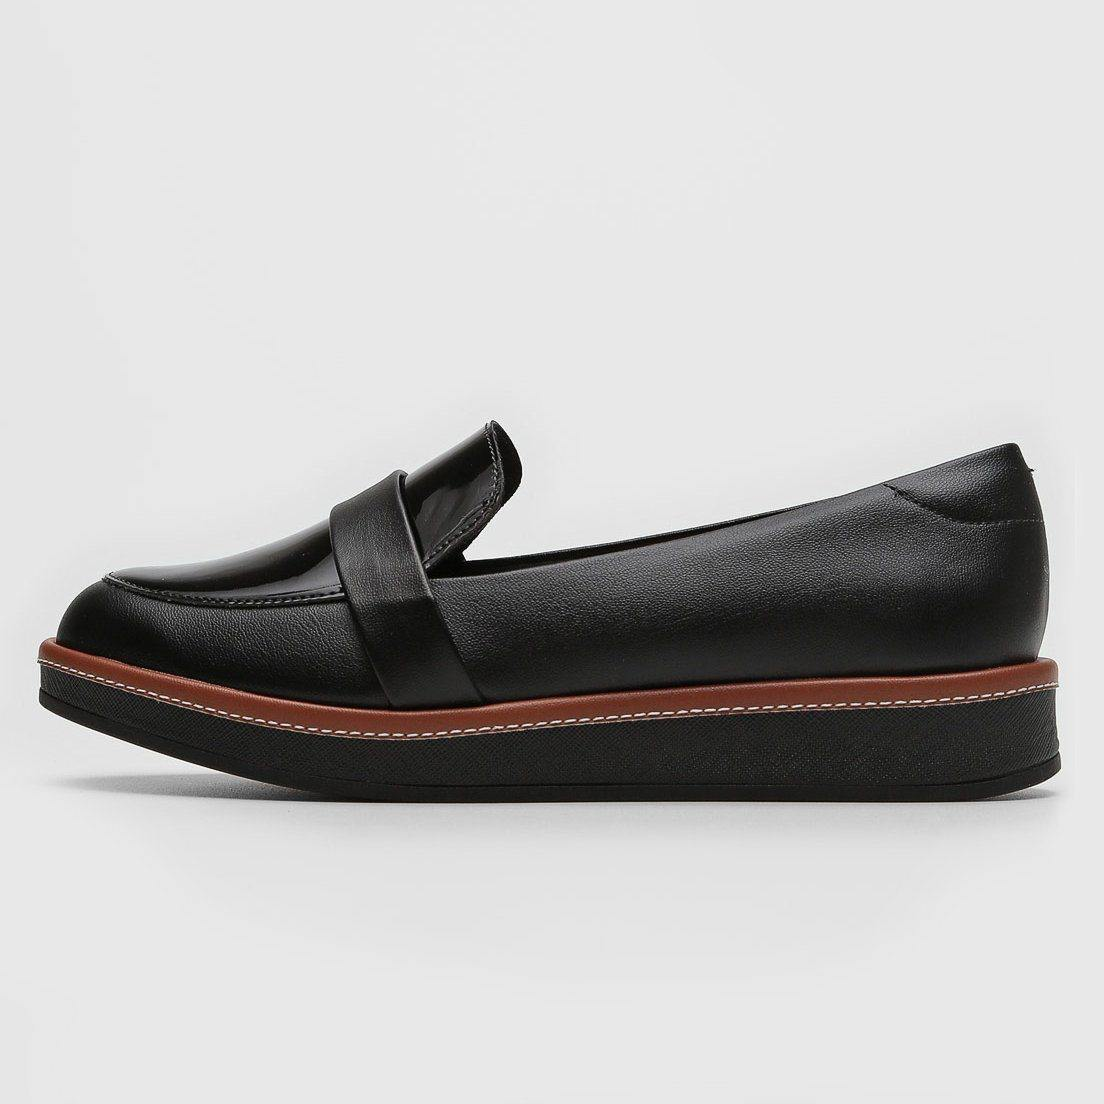 Beira Rio 4235-203 Platform Loafer Flat in Black